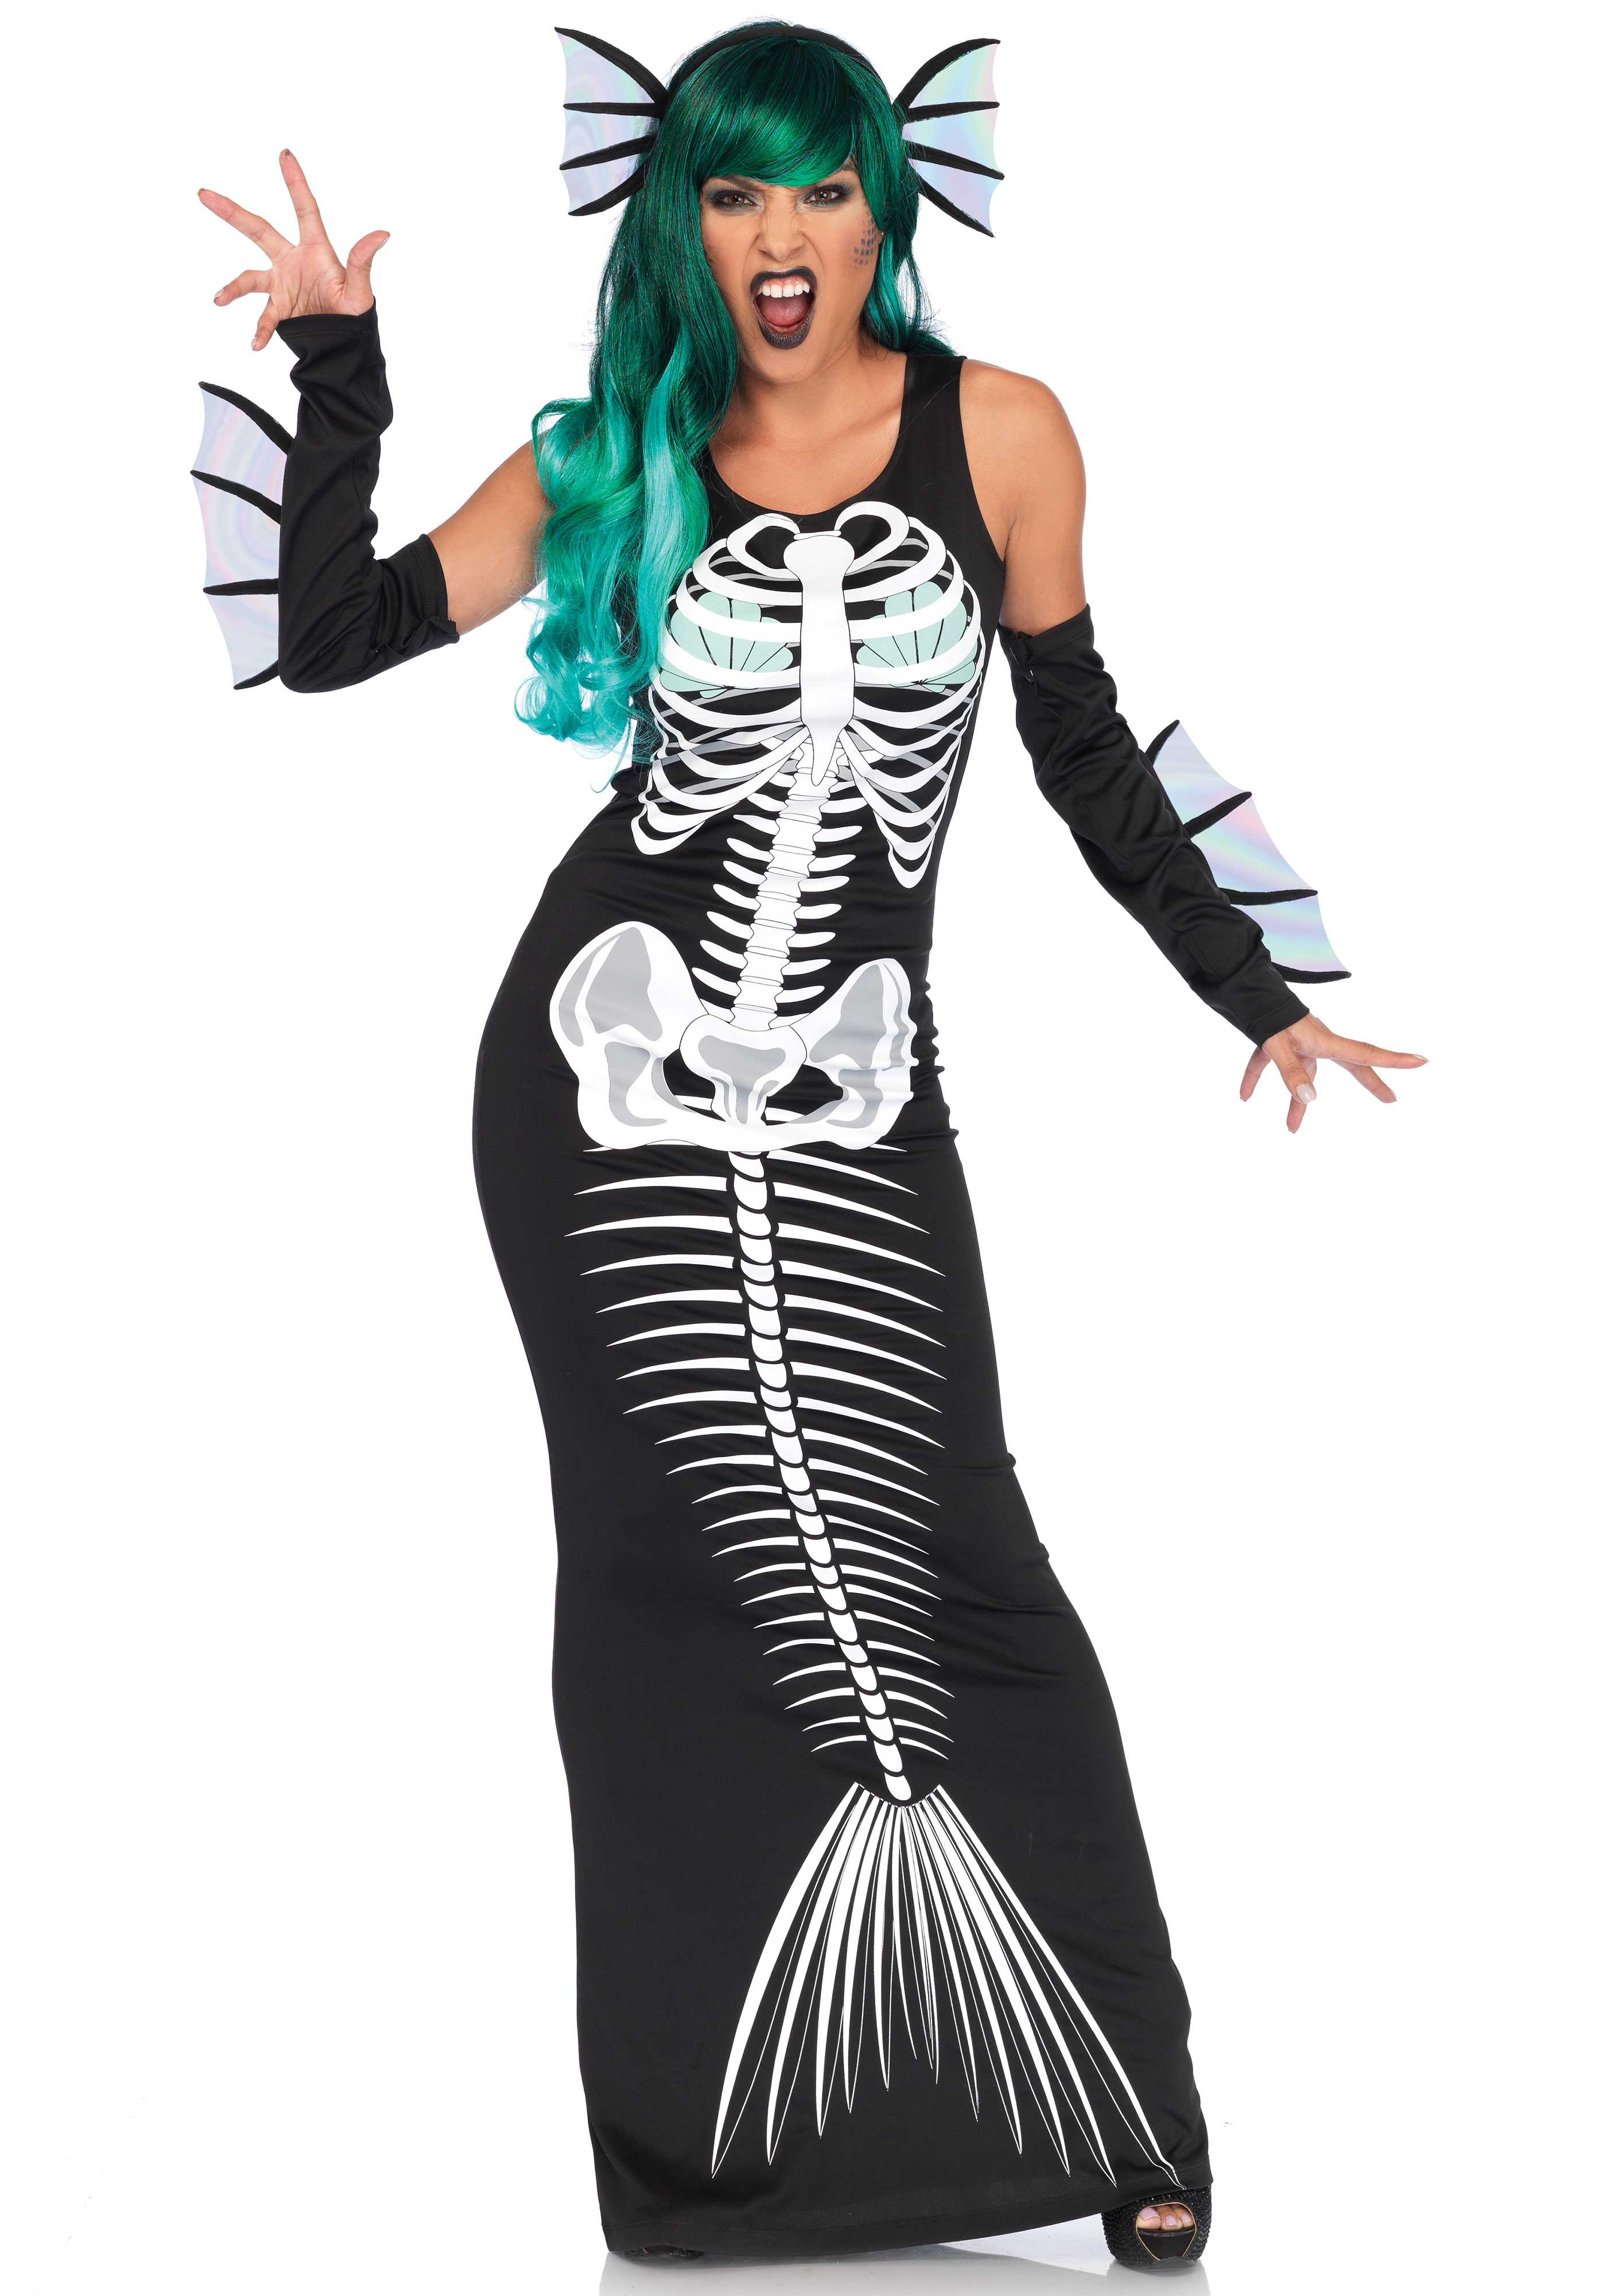 3PC. Skeleton Siren costume, includes mermaid skeleton tank dress, fin arm warmers, and matching head piece. Fun shell bra top accent under sigh bone skeleton.